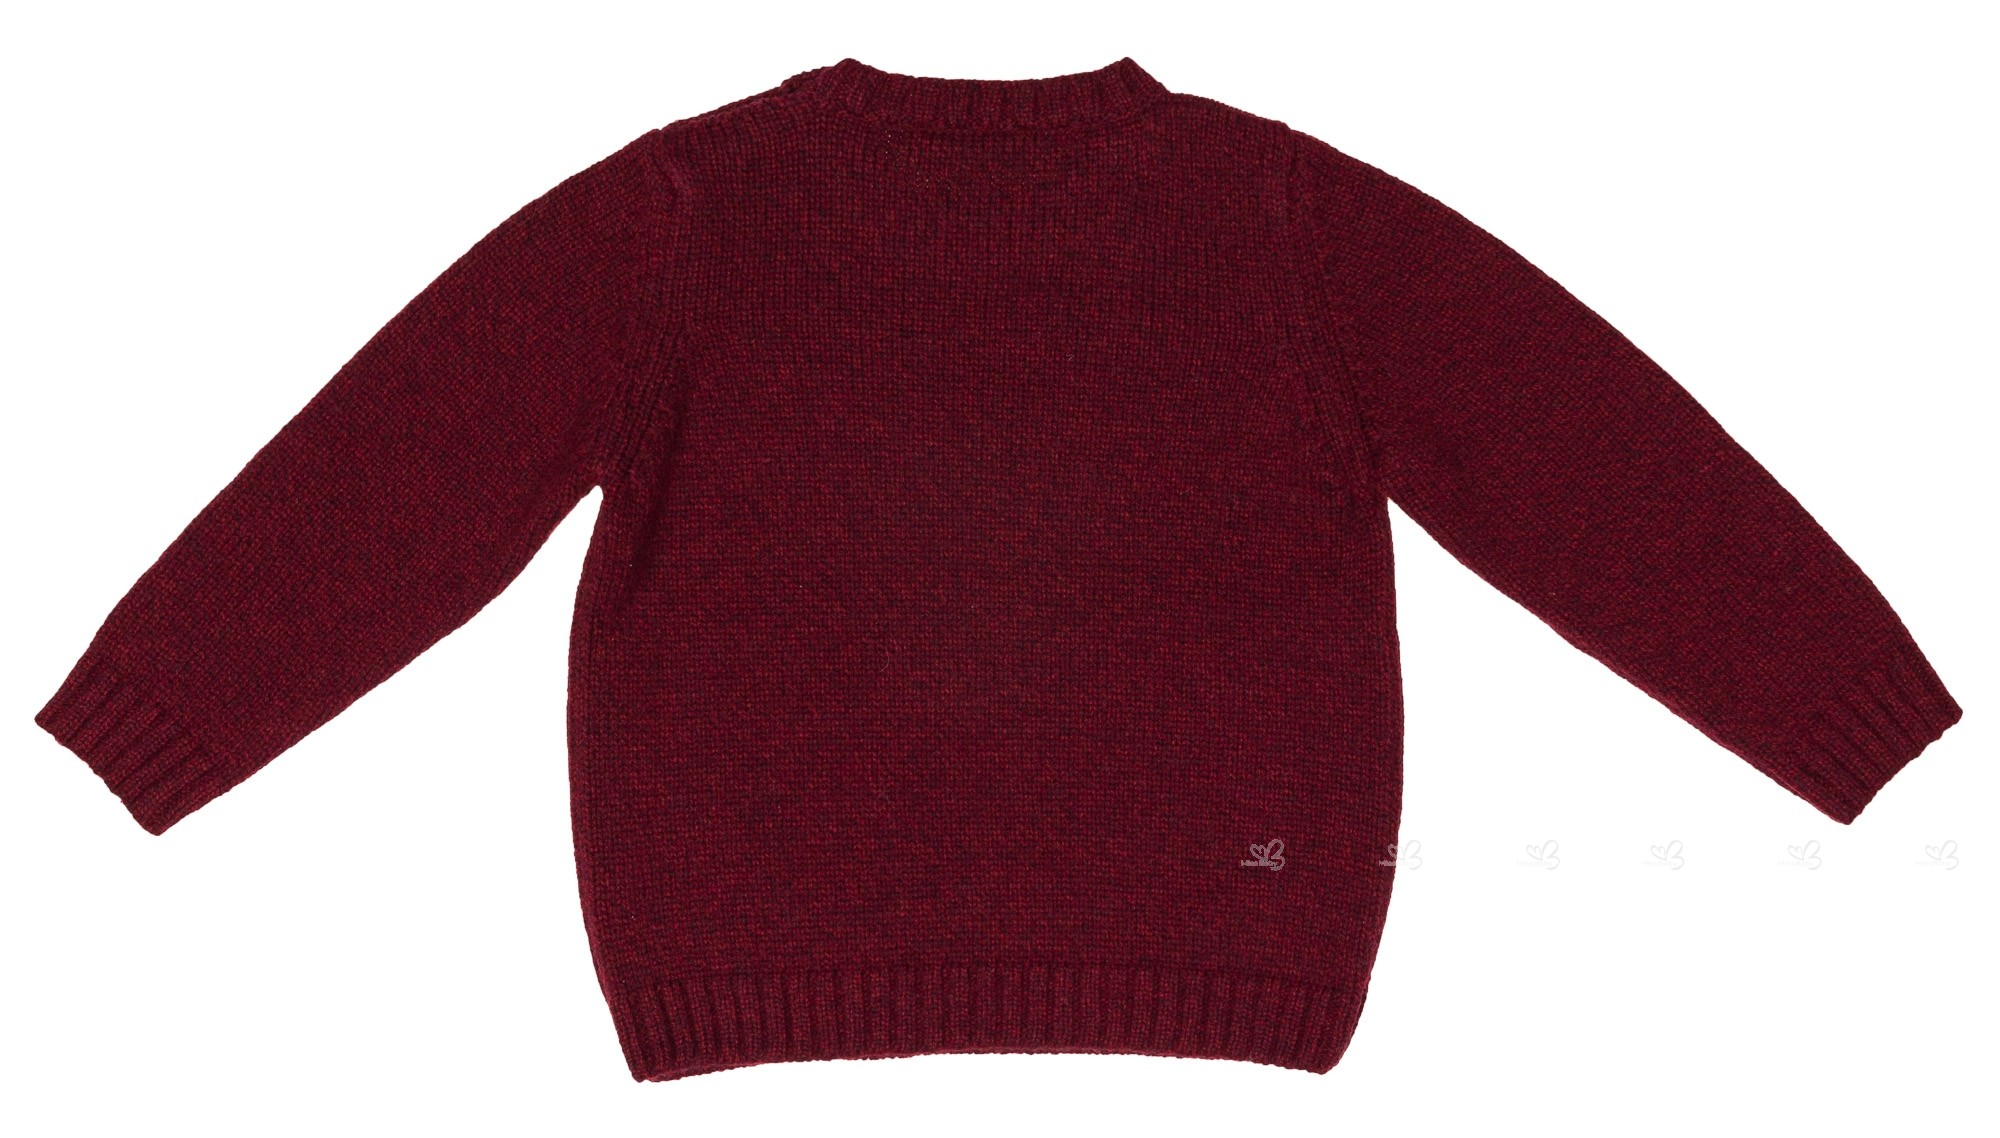 Girls Burgundy Deer Knitted Wool Sweater | Missbaby